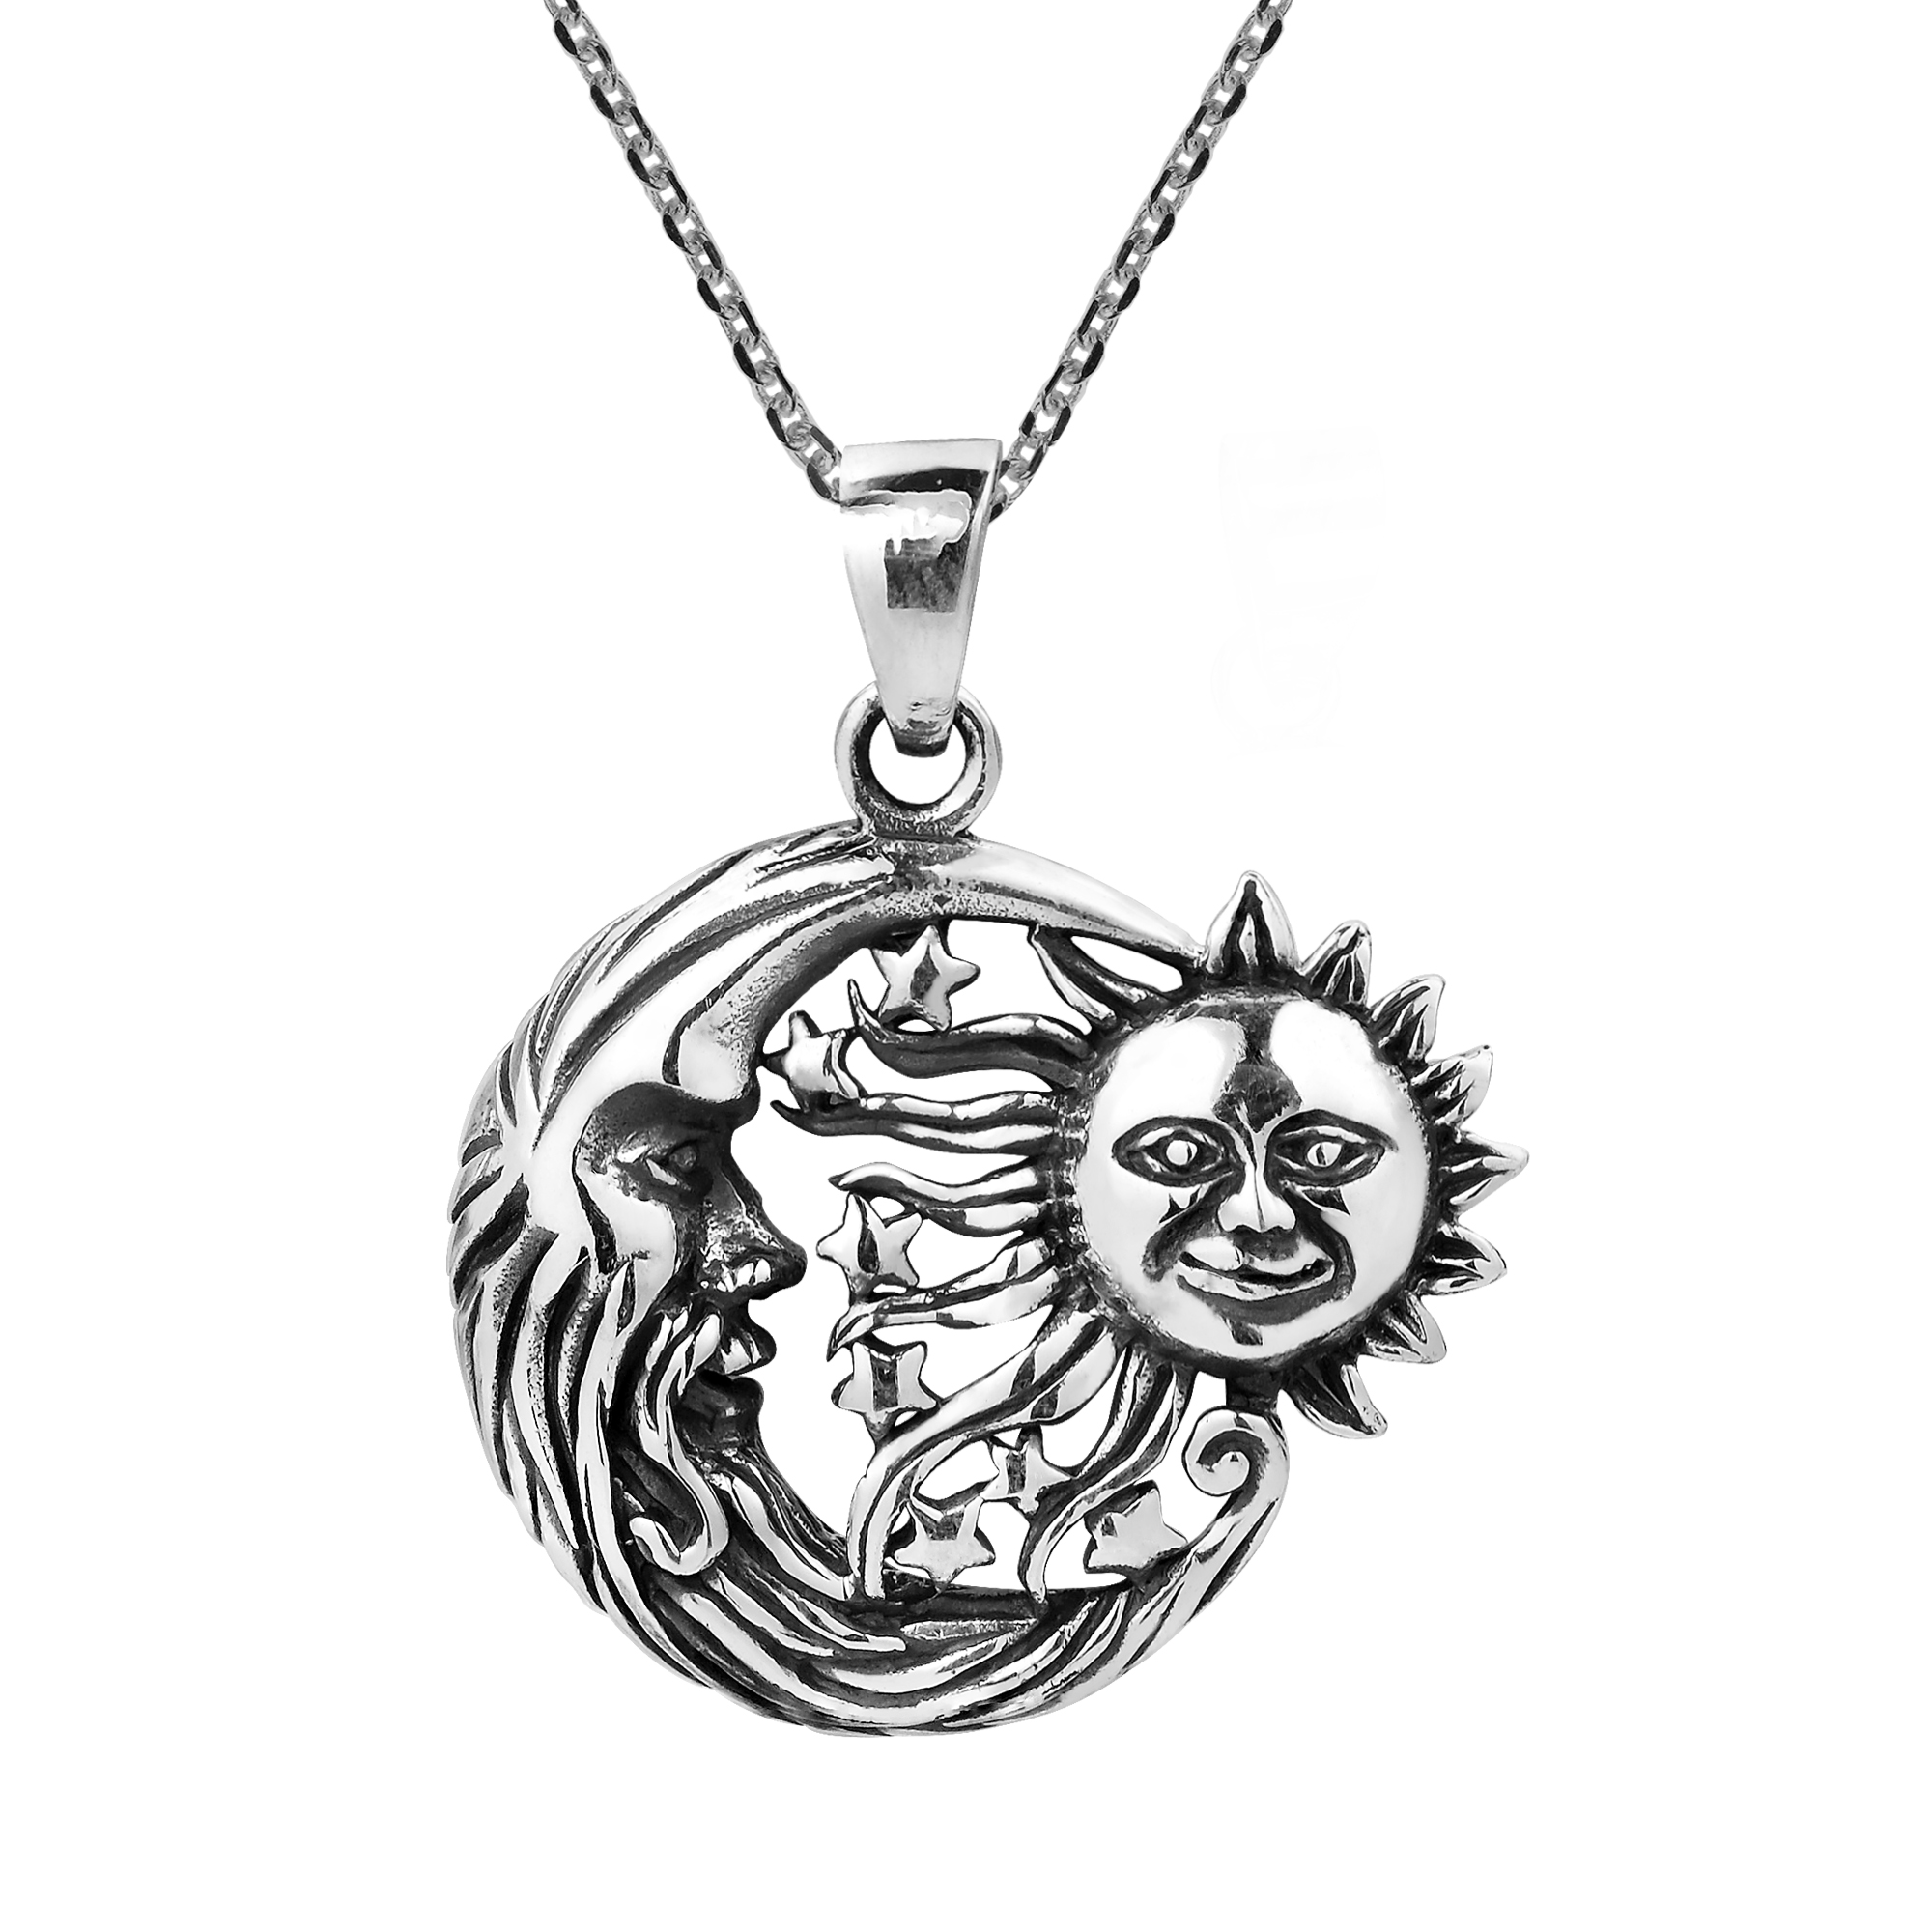 details and celestial necklace beautiful sterling this combine features silversmith o pendant of handmade personified a expert silver the embrace products khun version in aeravida moon s plain star sun pn thailand necklaces by